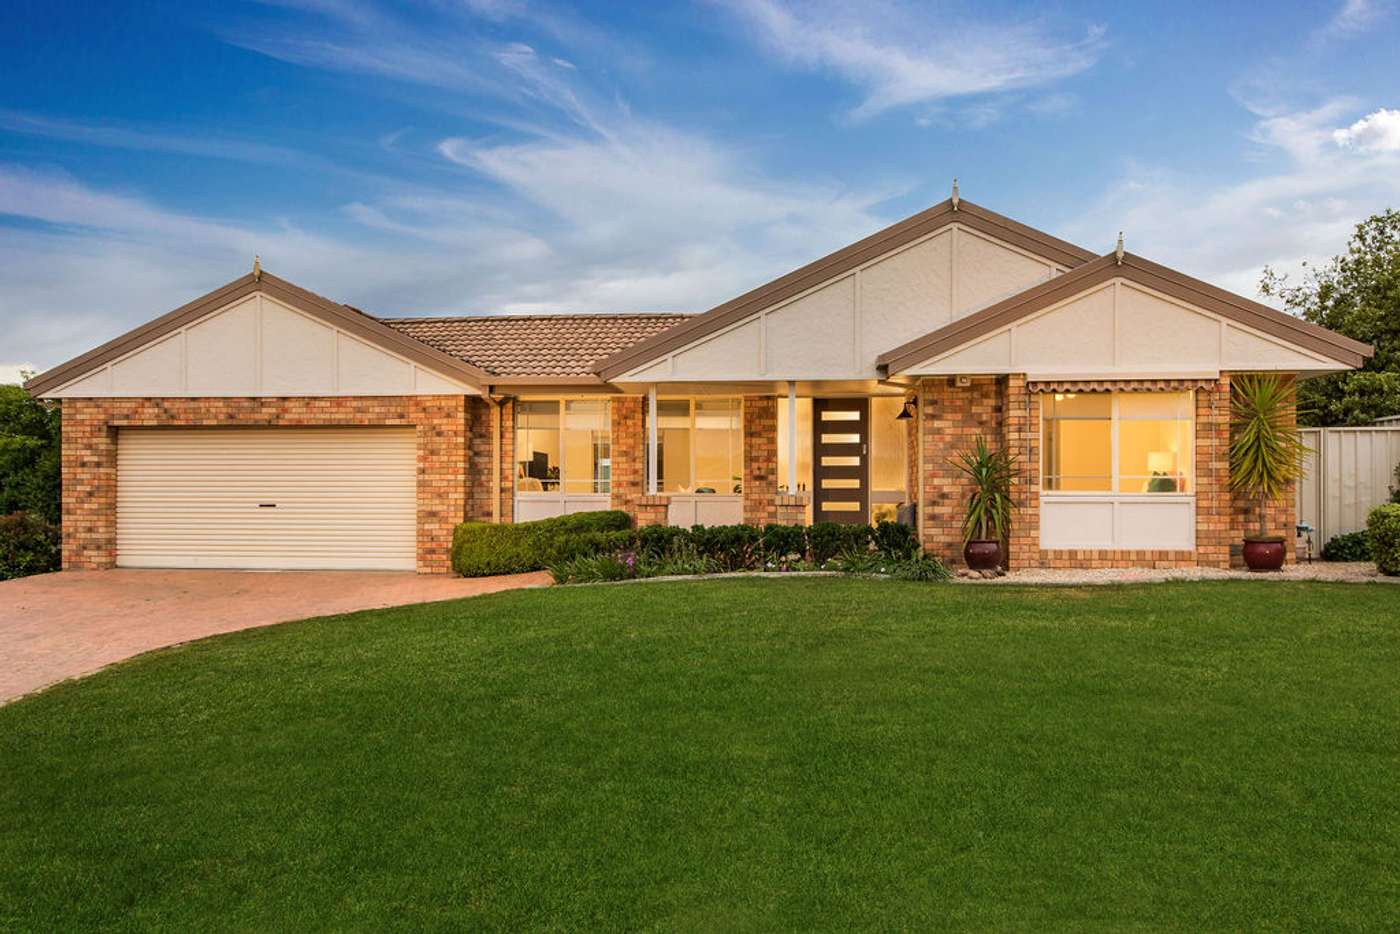 Main view of Homely house listing, 4 Falcon Circuit, Wodonga VIC 3690